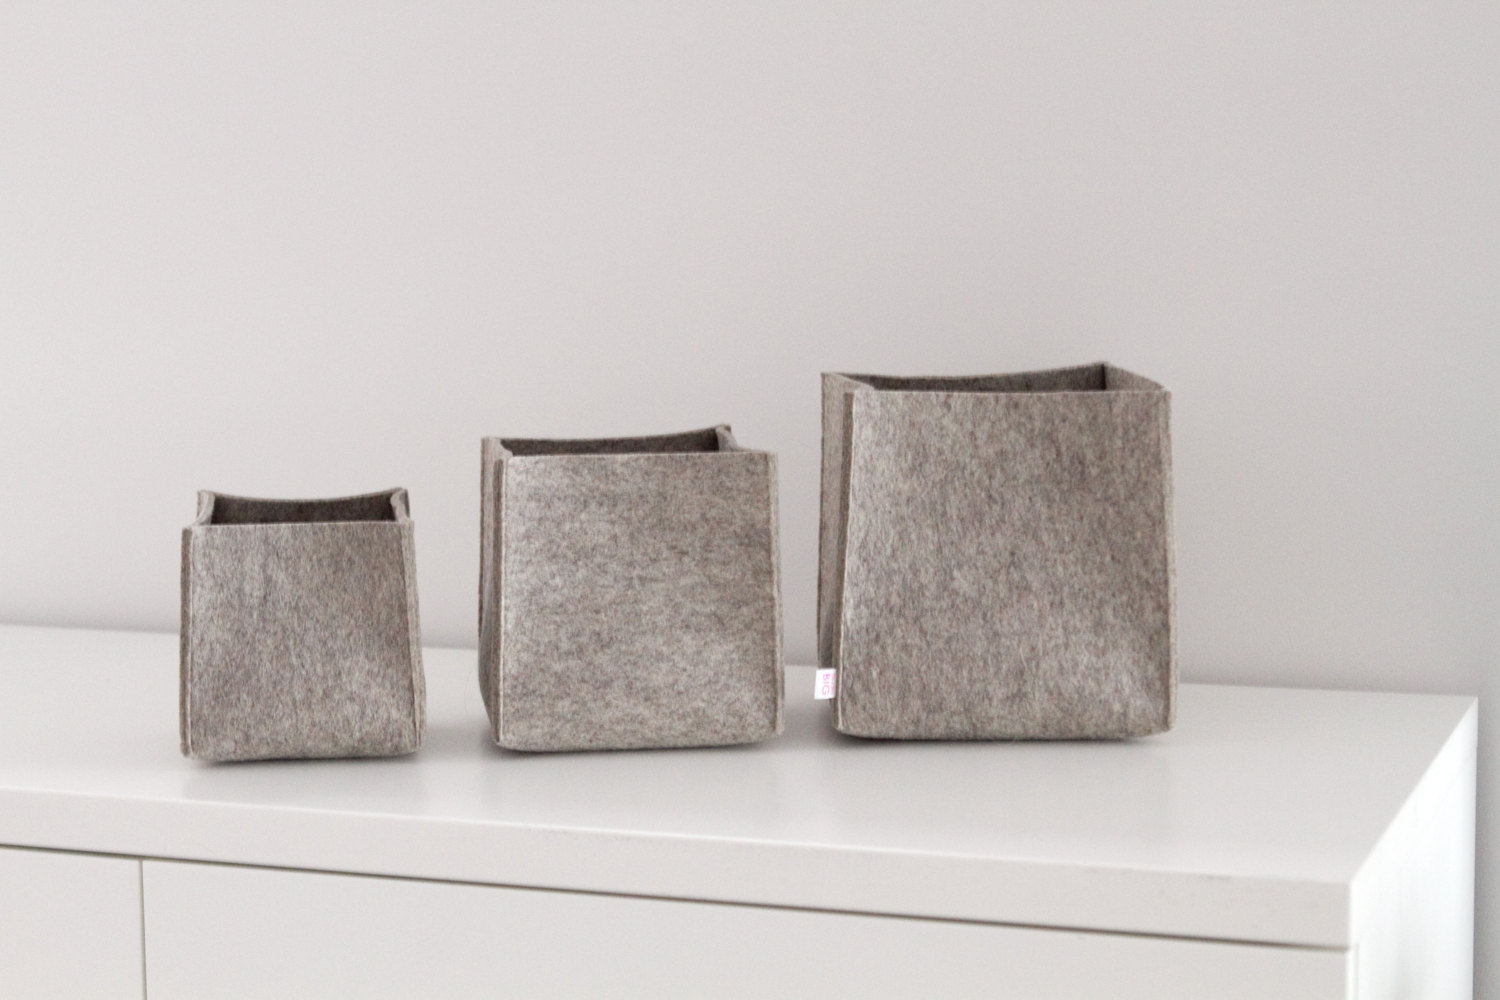 Felt Storage Bins Offering Stylish Storage for Your Home Decorations